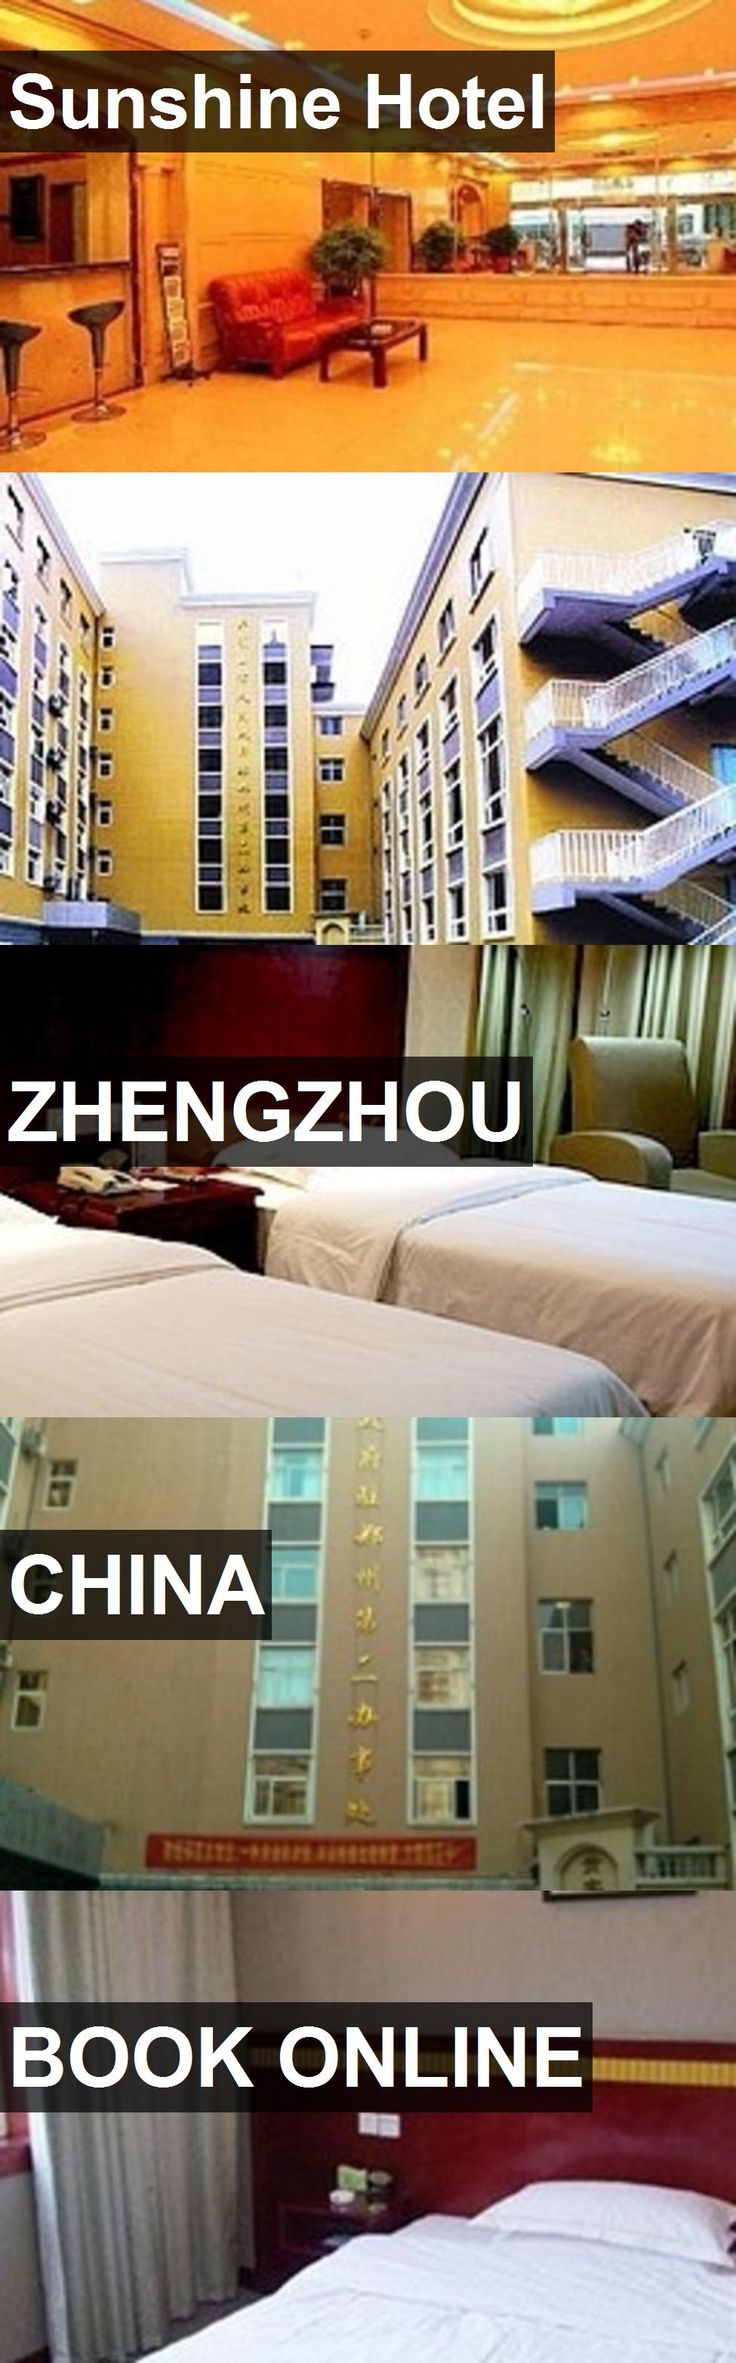 Hotel Sunshine Hotel in Zhengzhou, China. For more information, photos, reviews and best prices please follow the link. #China #Zhengzhou #SunshineHotel #hotel #travel #vacation